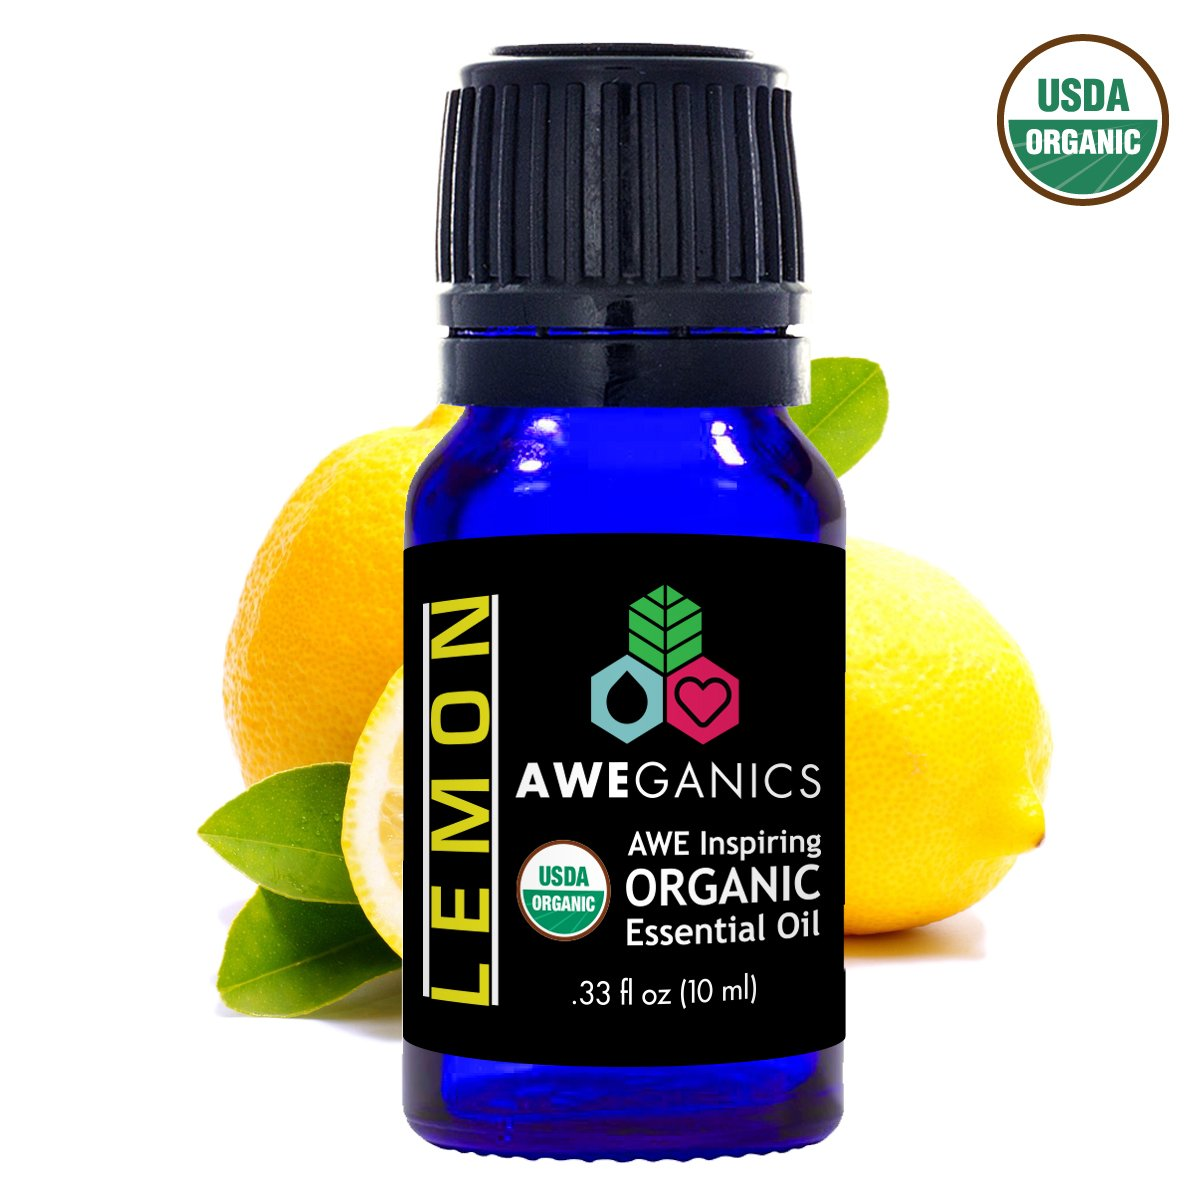 Lemon Essential Oil, 10 ml, USDA Organic, 100% Pure&Natural Therapeutic Grade - Aweganics (10 ml)